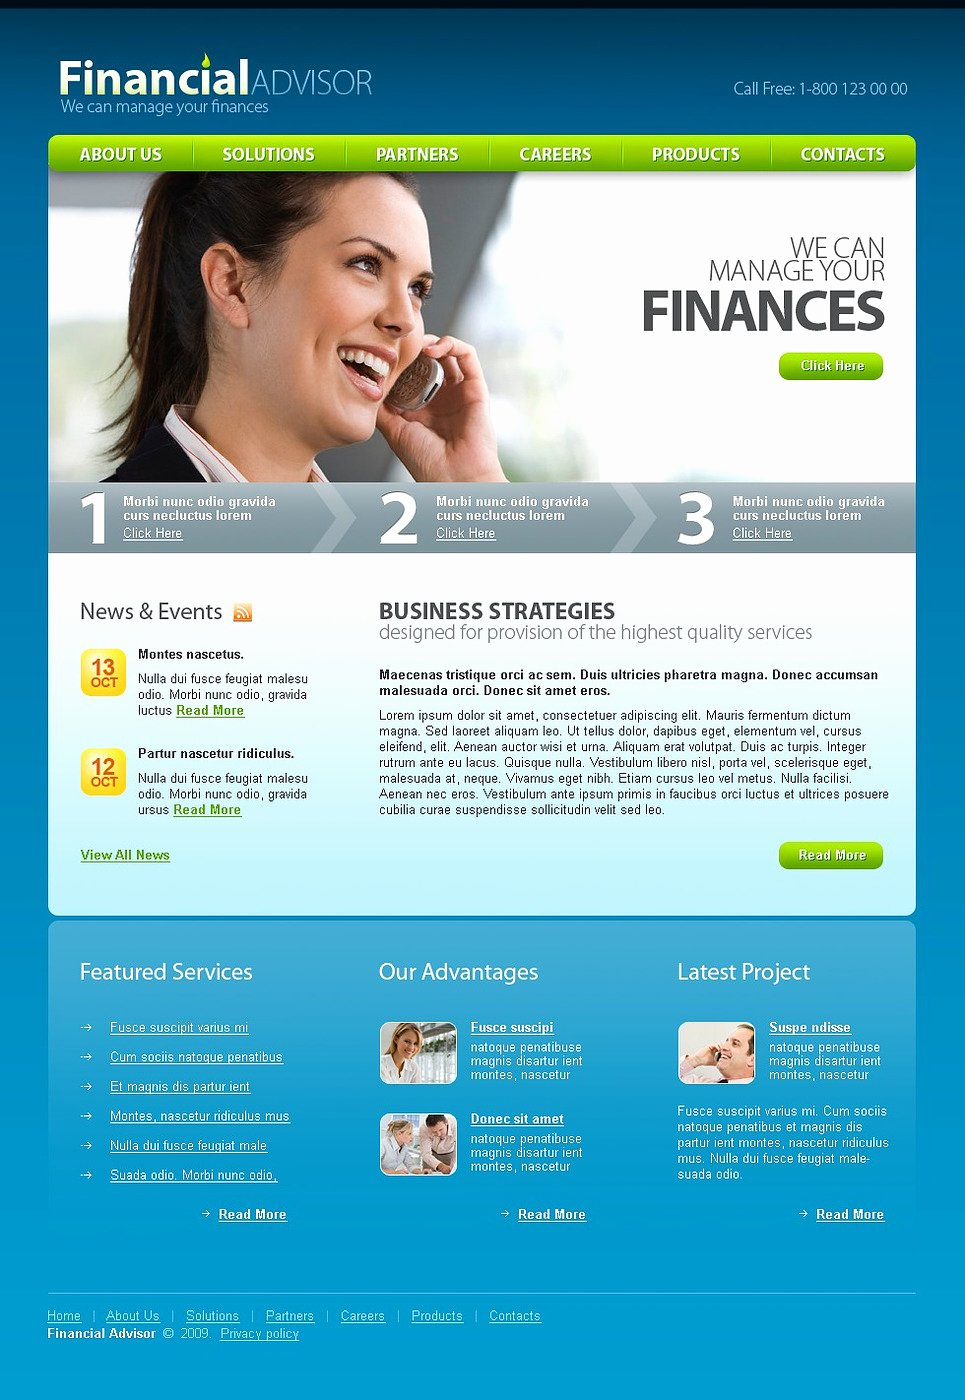 Financial Advisor Website Template Fresh Financial Advisor Website Template